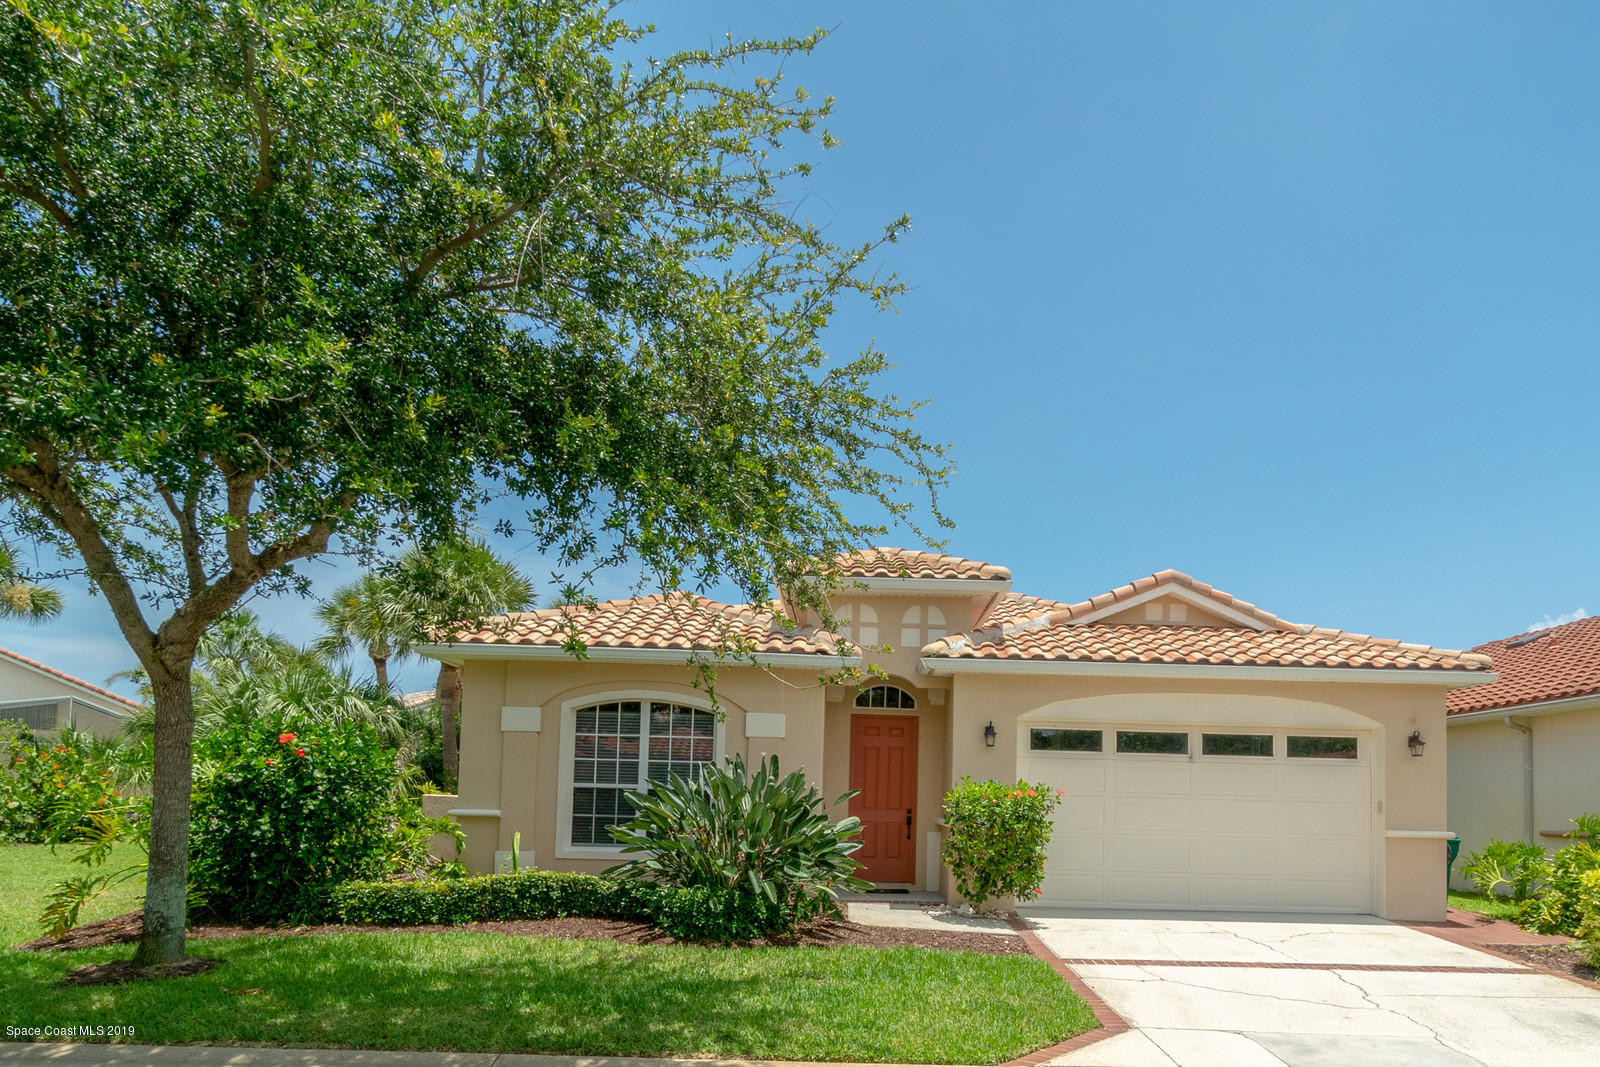 Single Family Homes for Sale at 217 Salt Grass Melbourne Beach, Florida 32951 United States